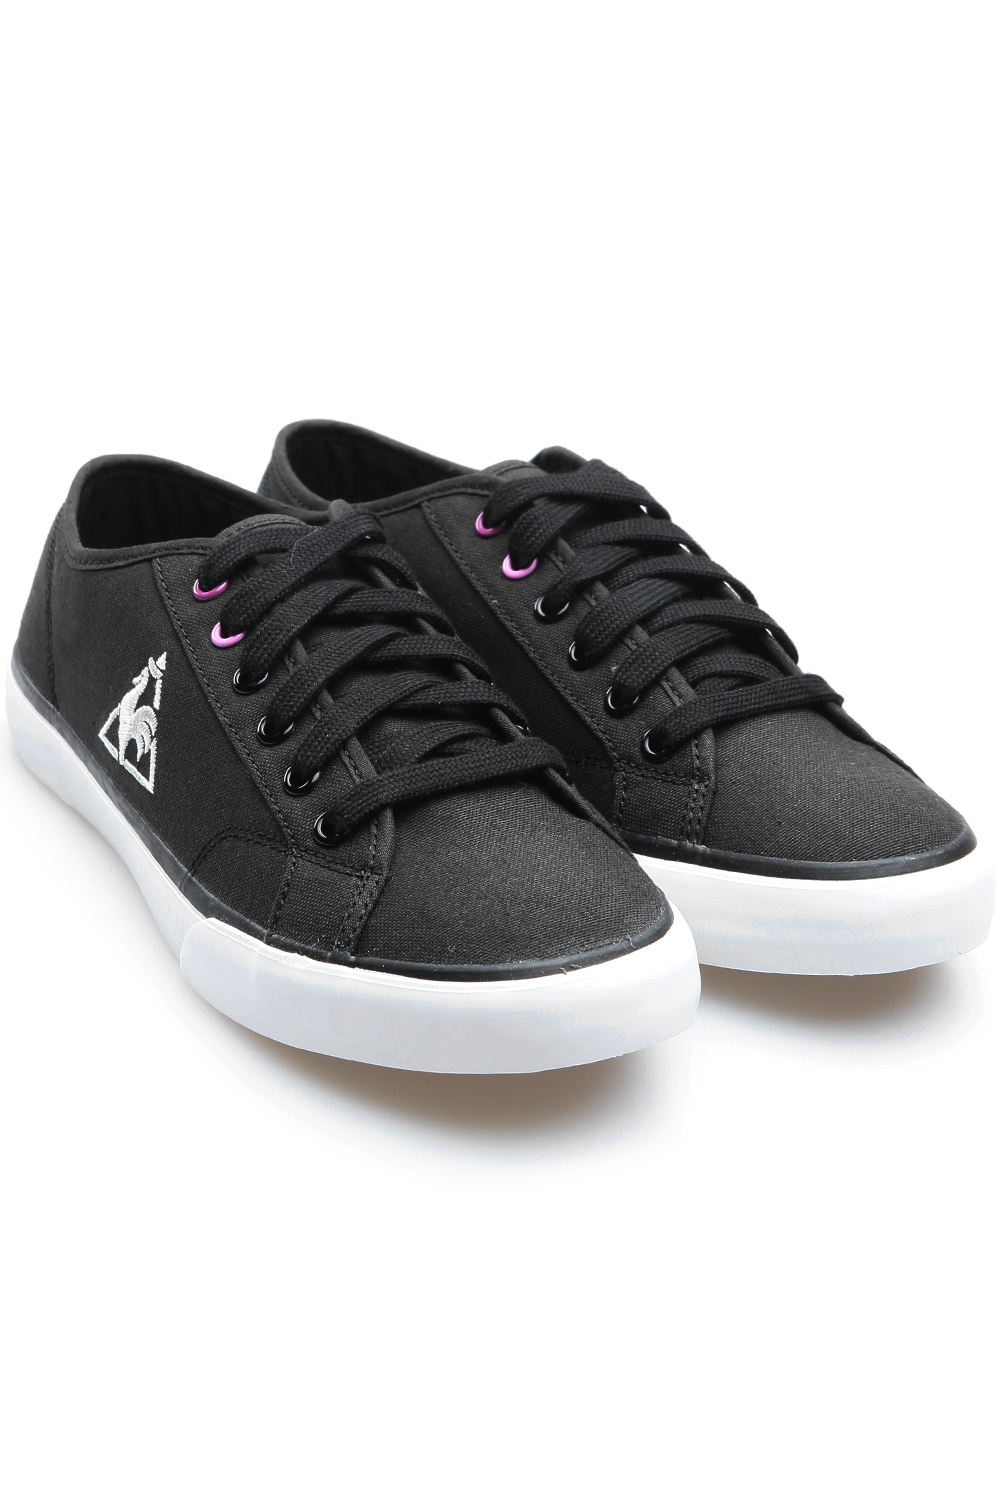 641bb2ecf861 ... le-coq-sportif-courteline-sneakers-black ...